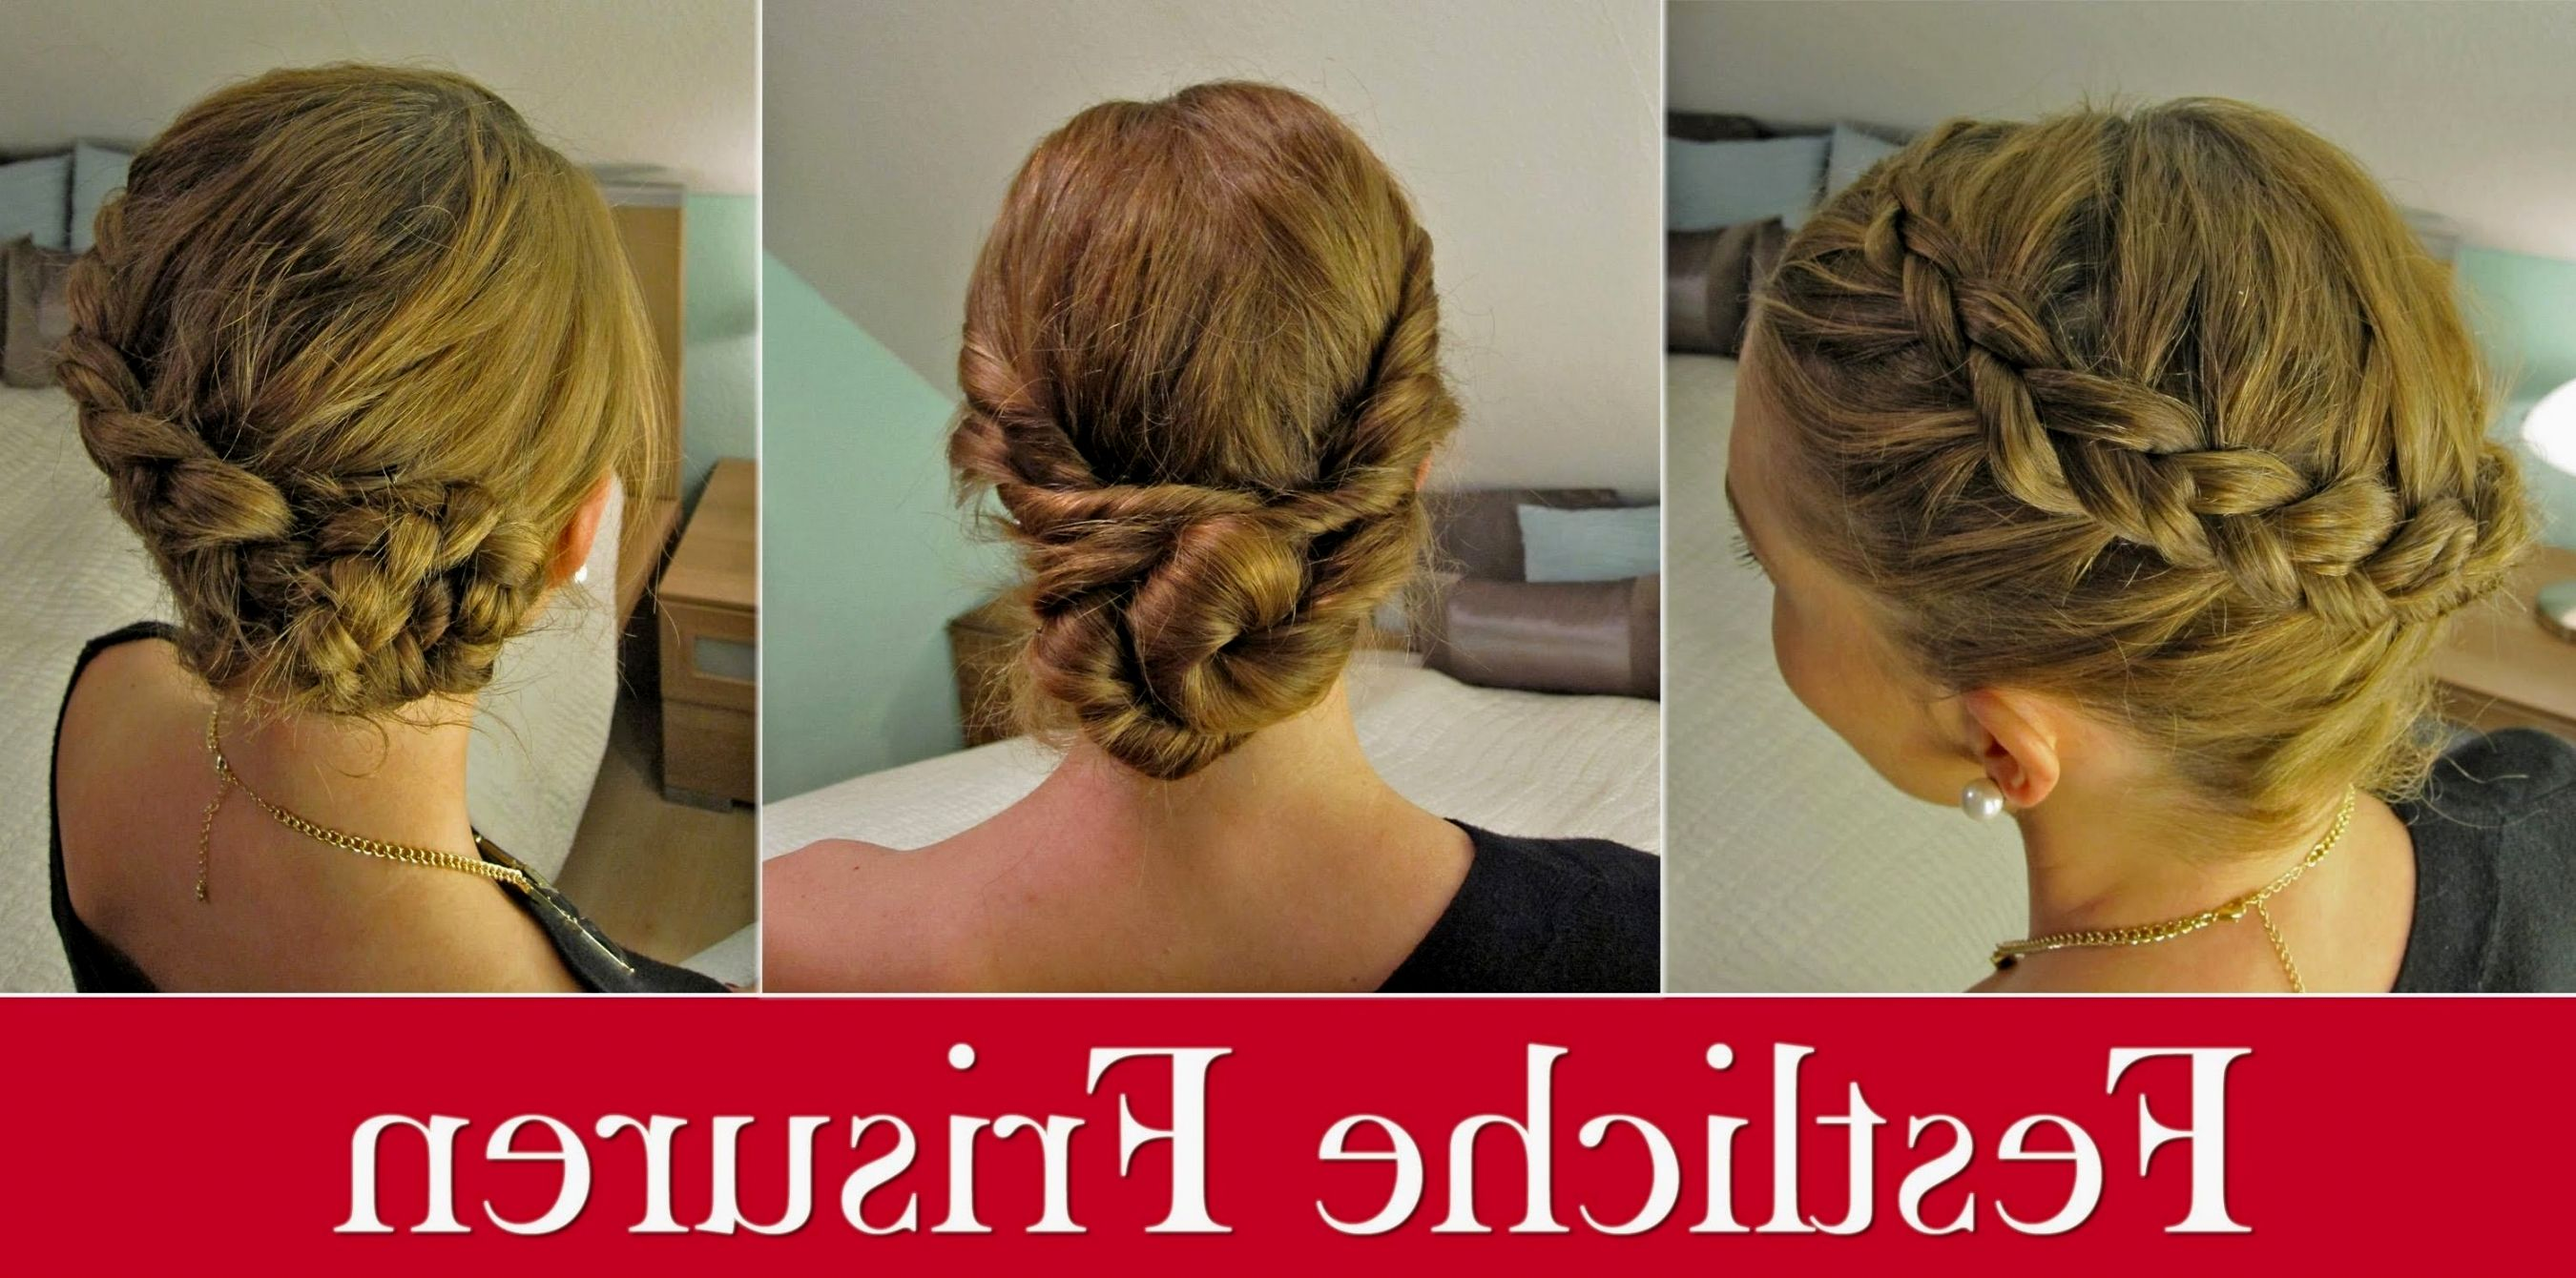 Inspirational Hairstyles Oval Face Design - Best Hairstyles Oval Face Architecture